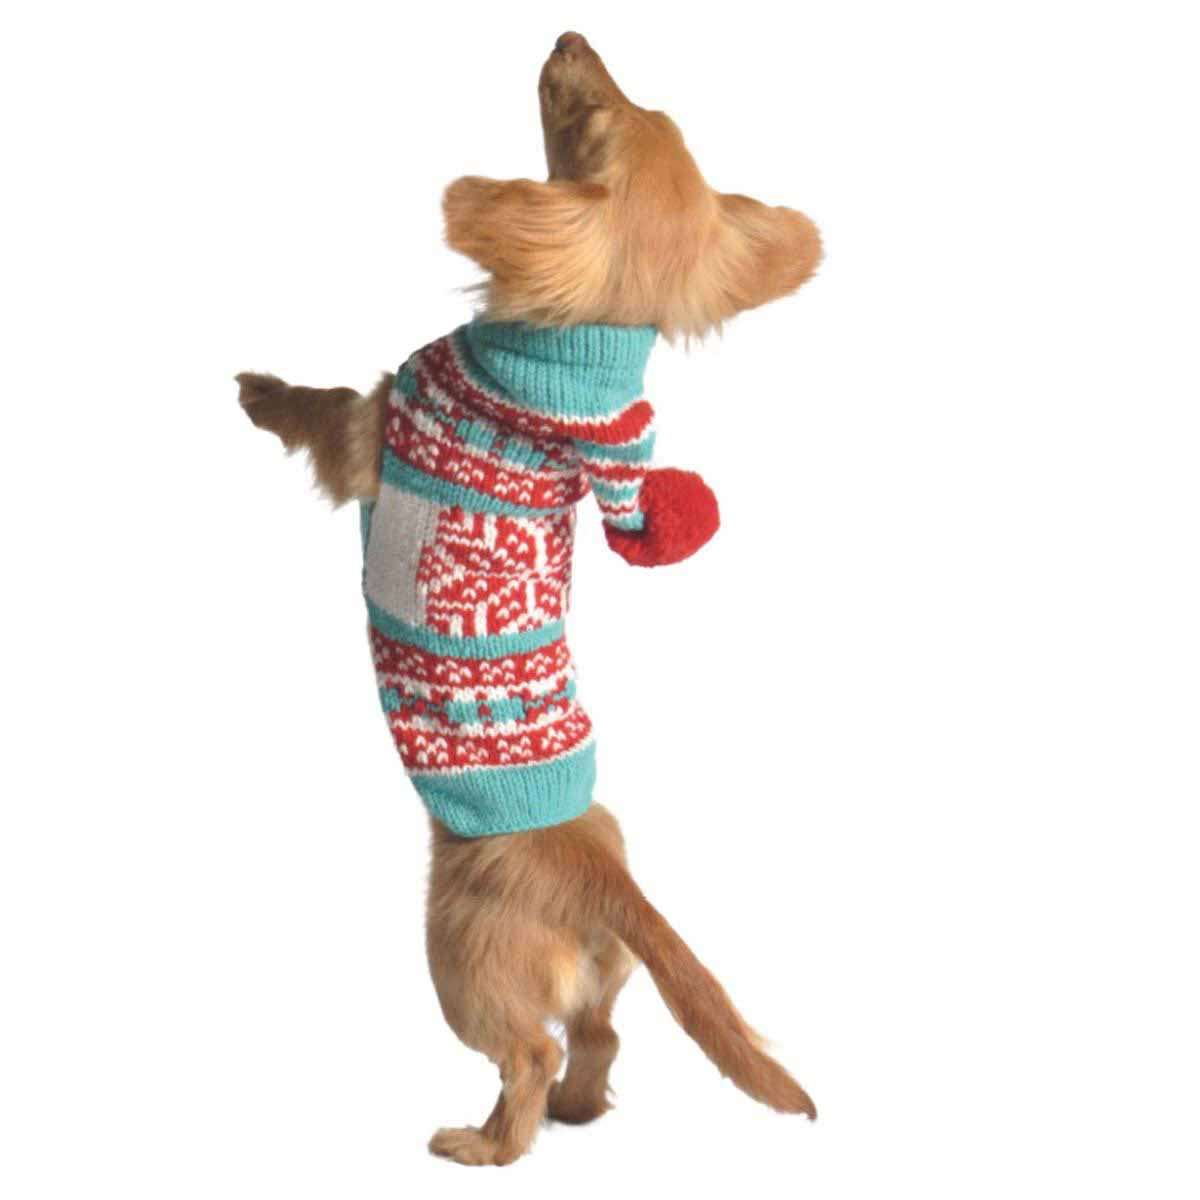 Handmade Peppermint Hoodie Wool Dog Sweater